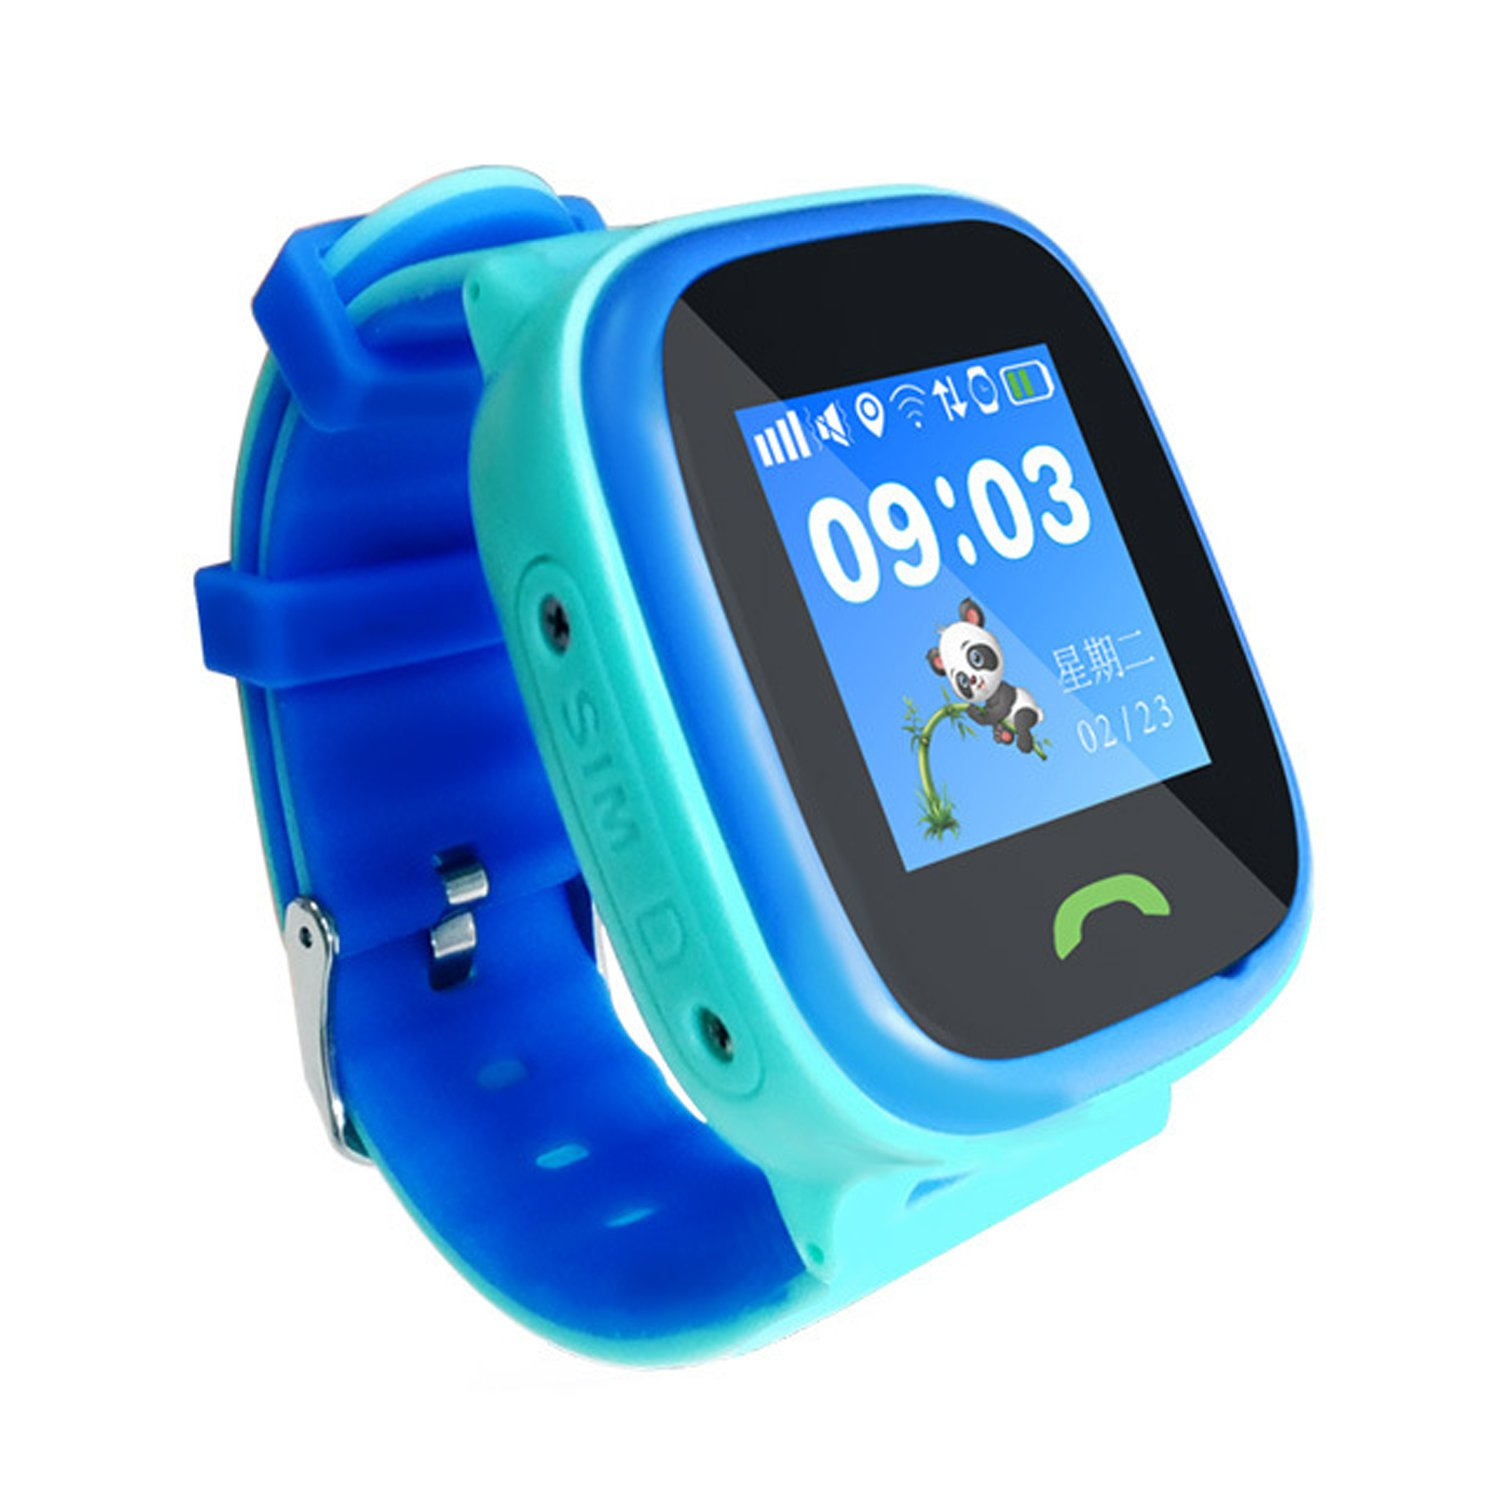 Kids Smartwatch with GPS, GIZEE Waterproof High Definition Voice Call Luminous Watchband SOS Positioning Smart Phone Watch for Children, Compatible with iPhone Android etc. (Blue)